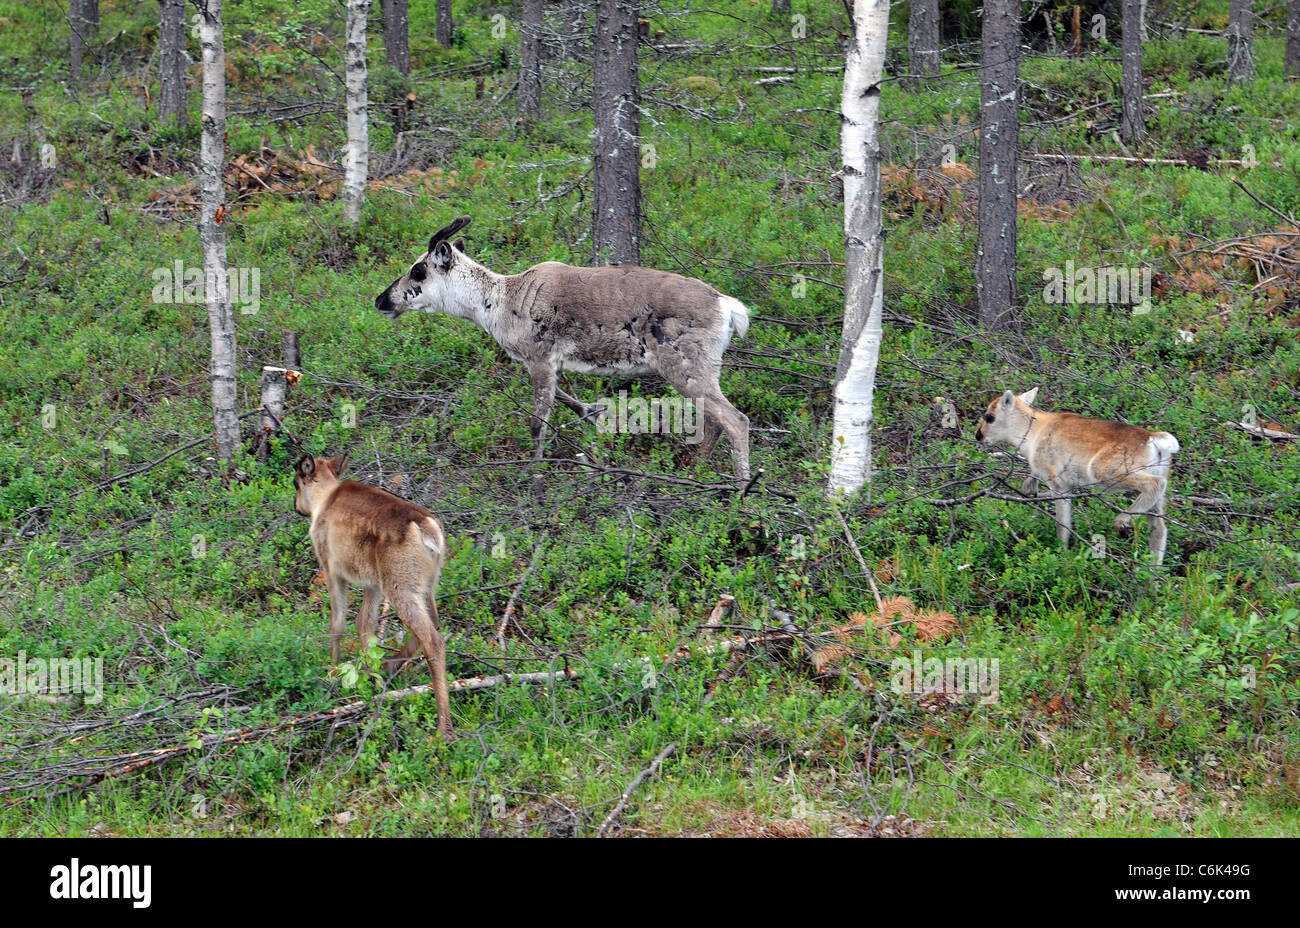 Reindeer in finnish Lapland - Stock Image